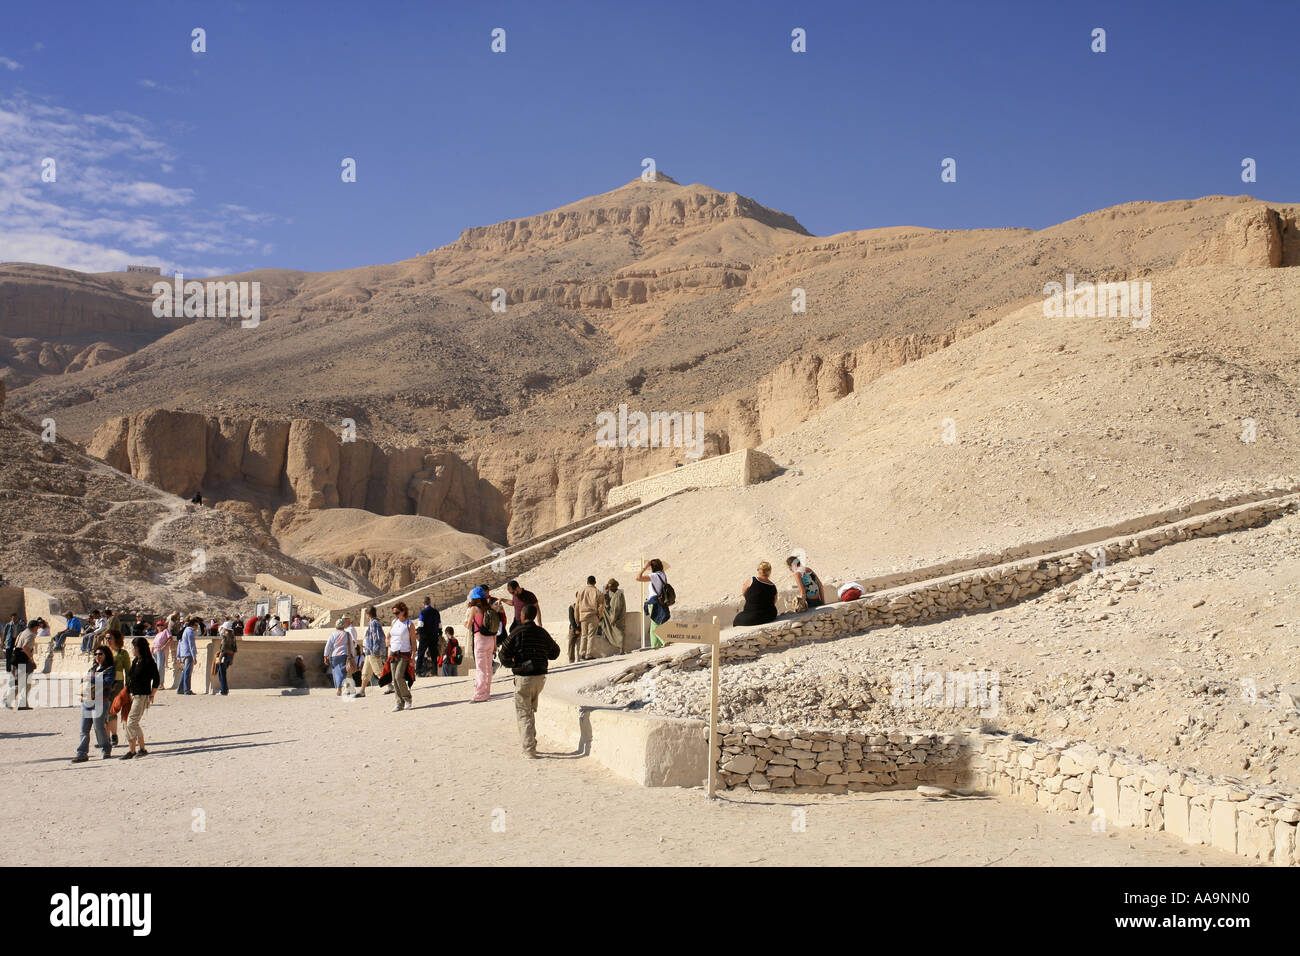 Valley of The Kings, Luxor, Egypt, home of the tomb of Tutankhamun - Stock Image